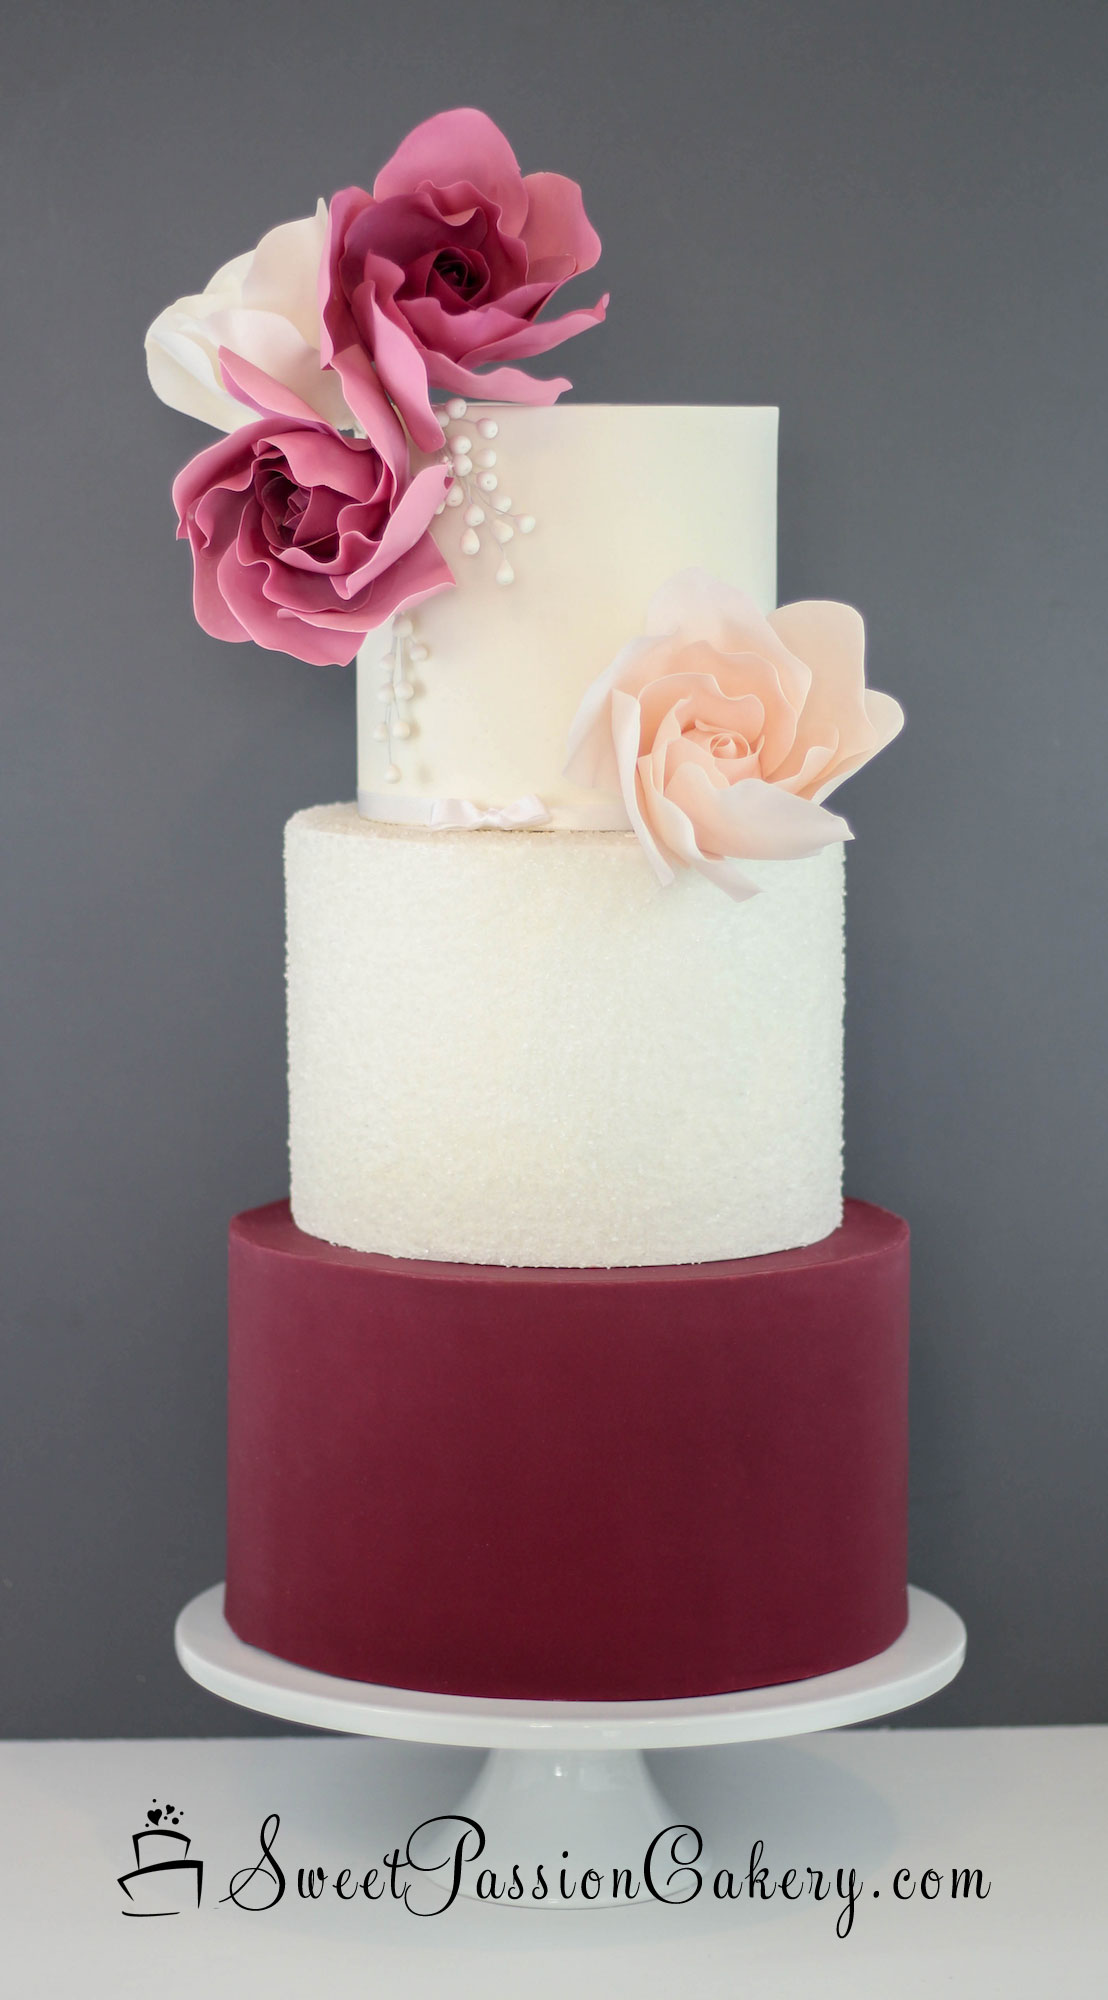 Burgundy & Blush fondant wedding cake